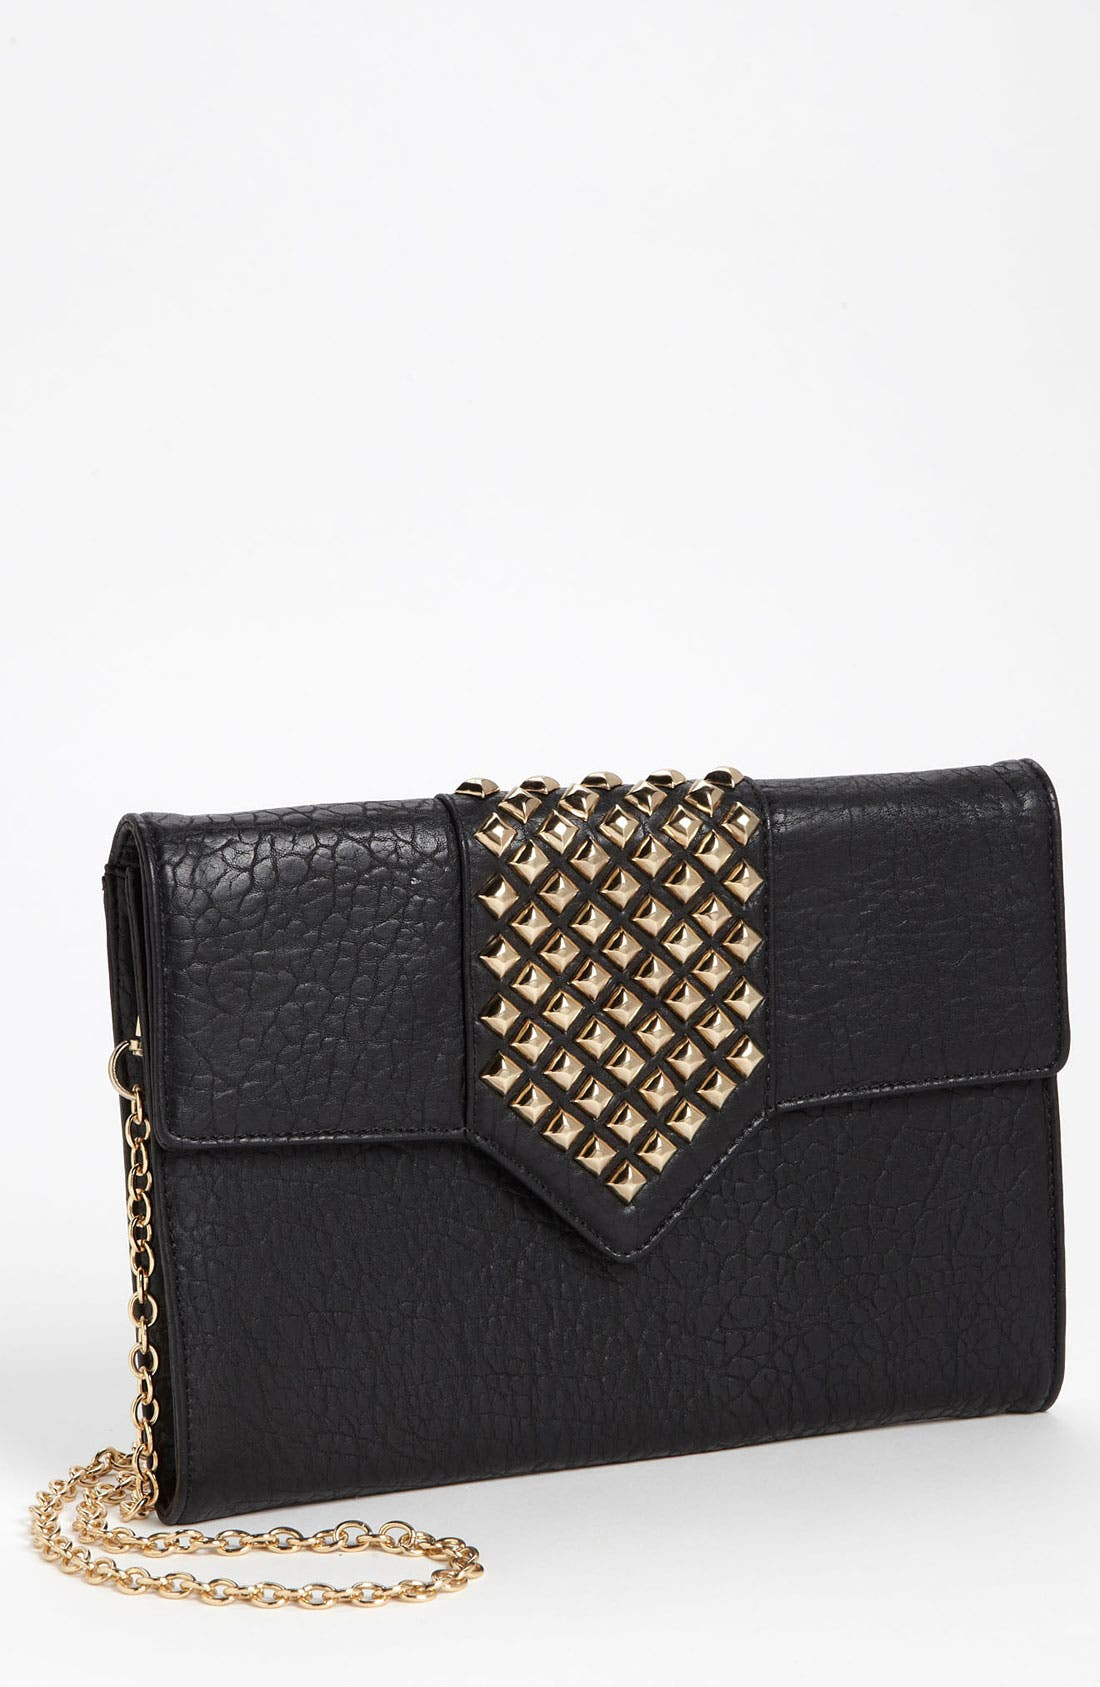 Alternate Image 1 Selected - Top Choice Studded Envelope Clutch